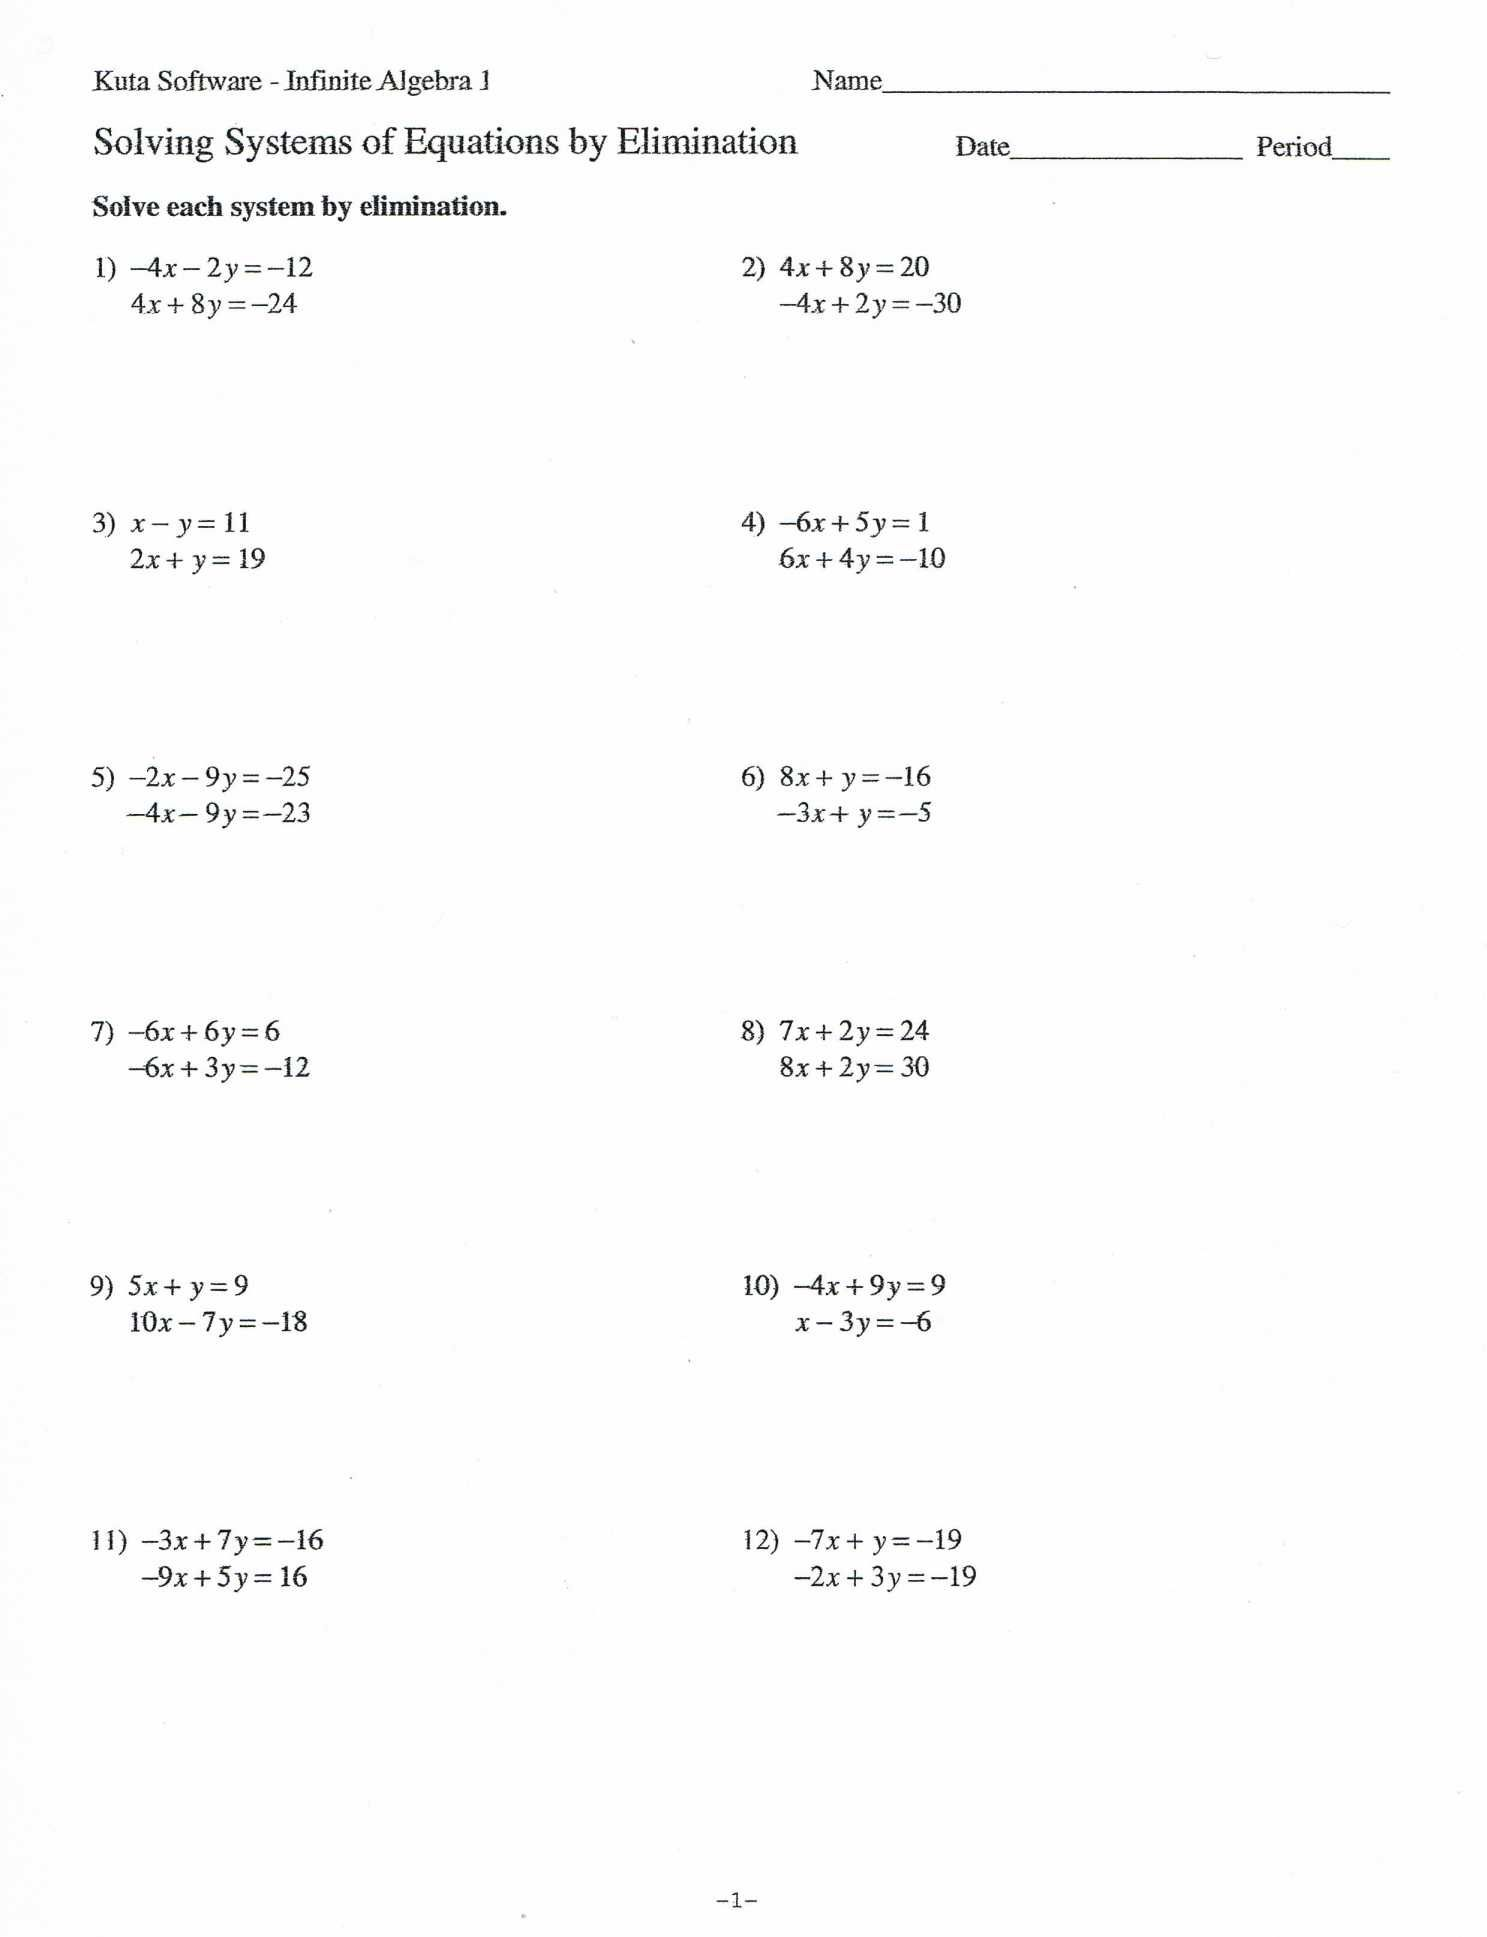 Control Of Gene Expression In Prokaryotes Pogil Worksheet Answers